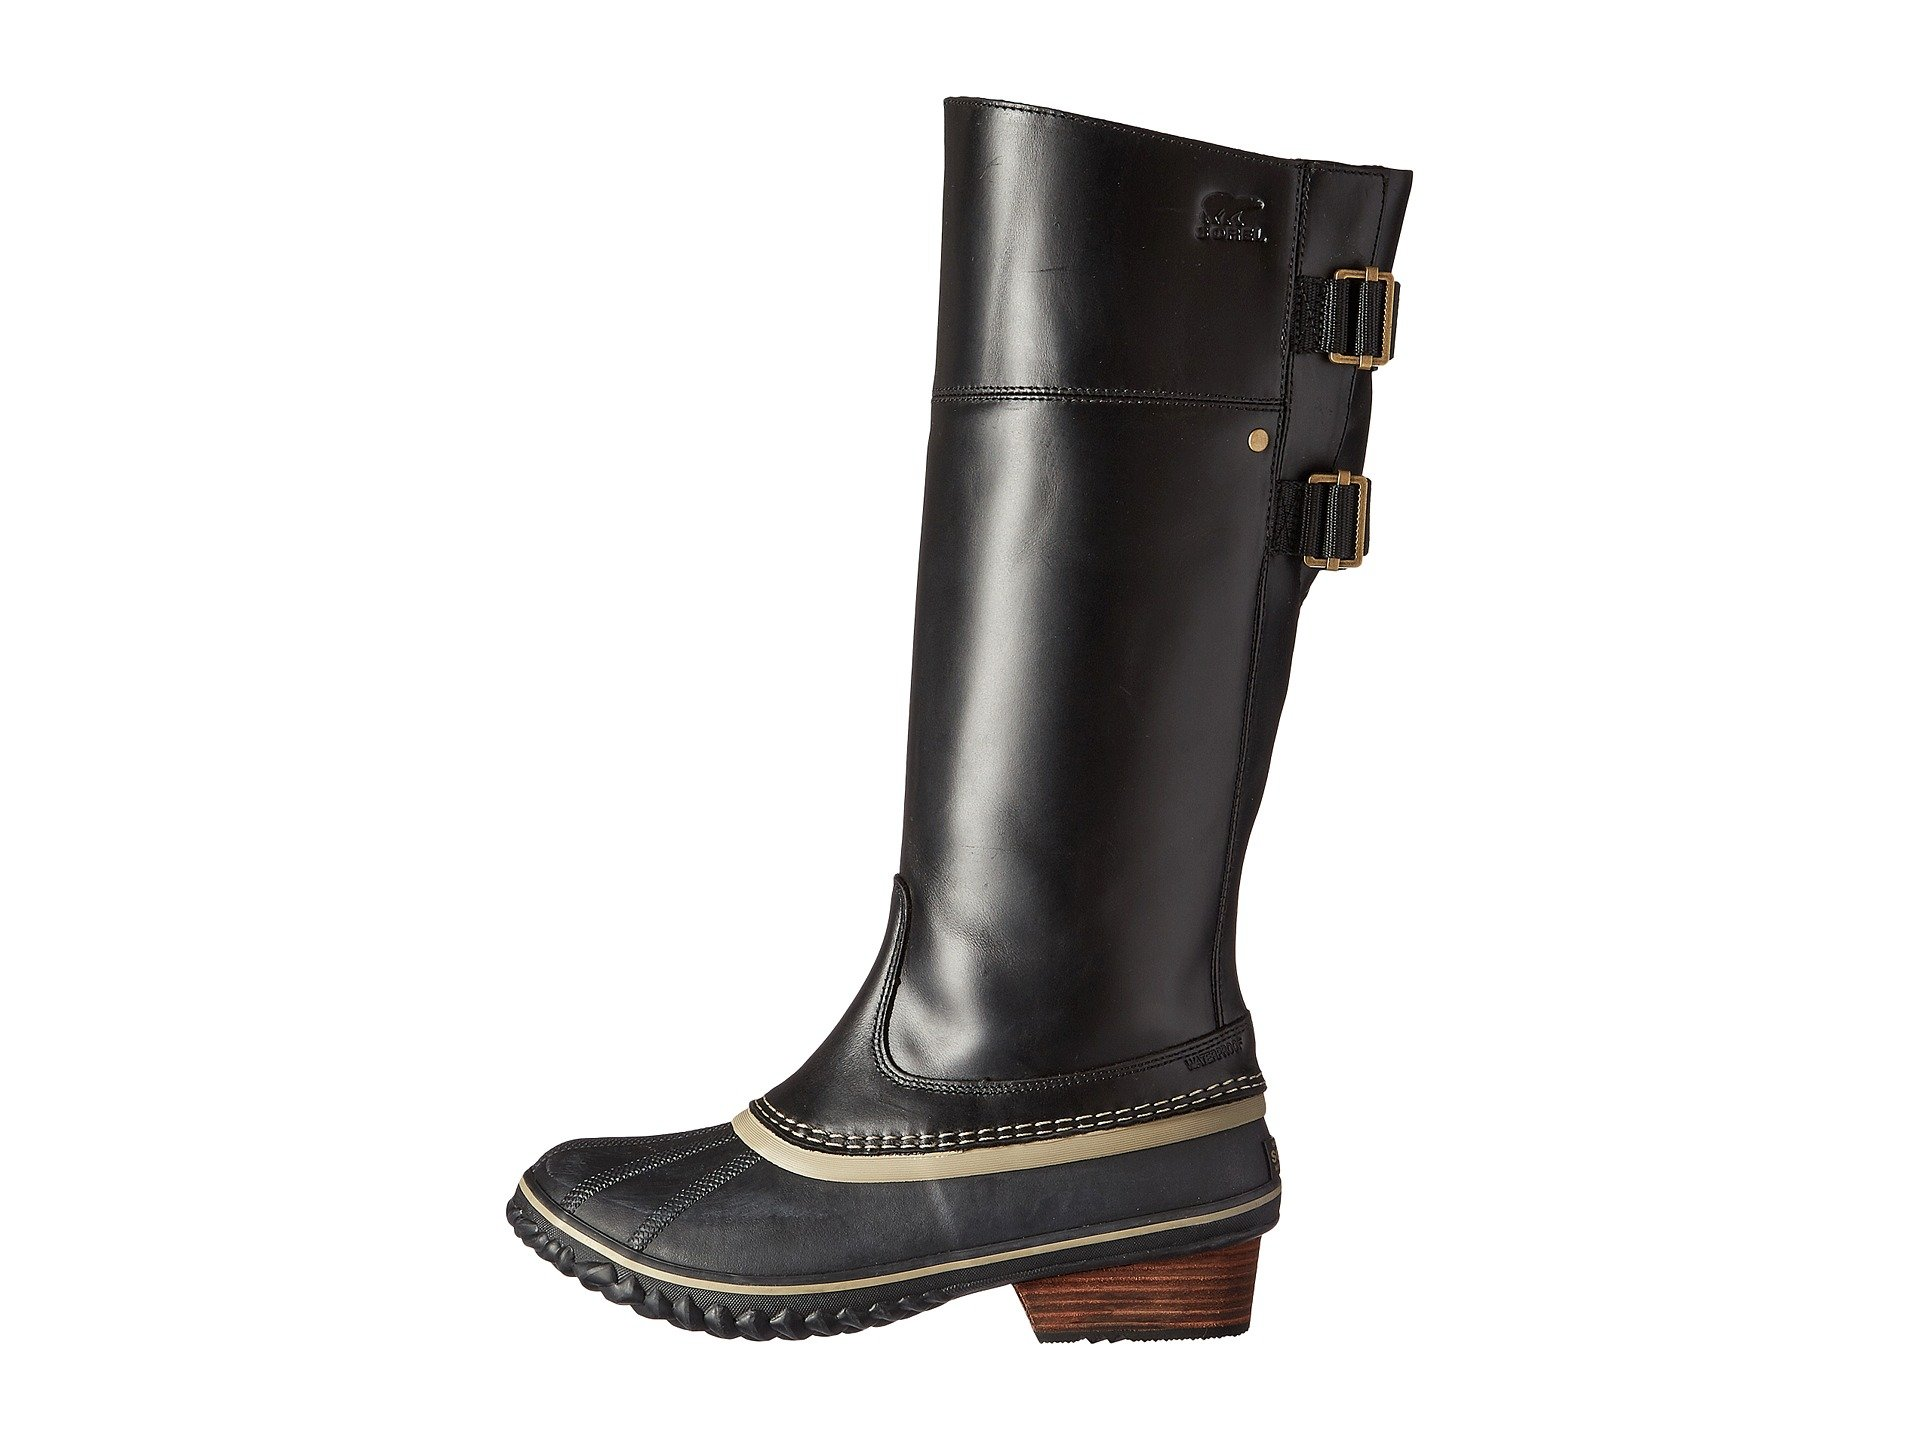 Sorel Slimpack Riding Tall Ii At Zappos Com